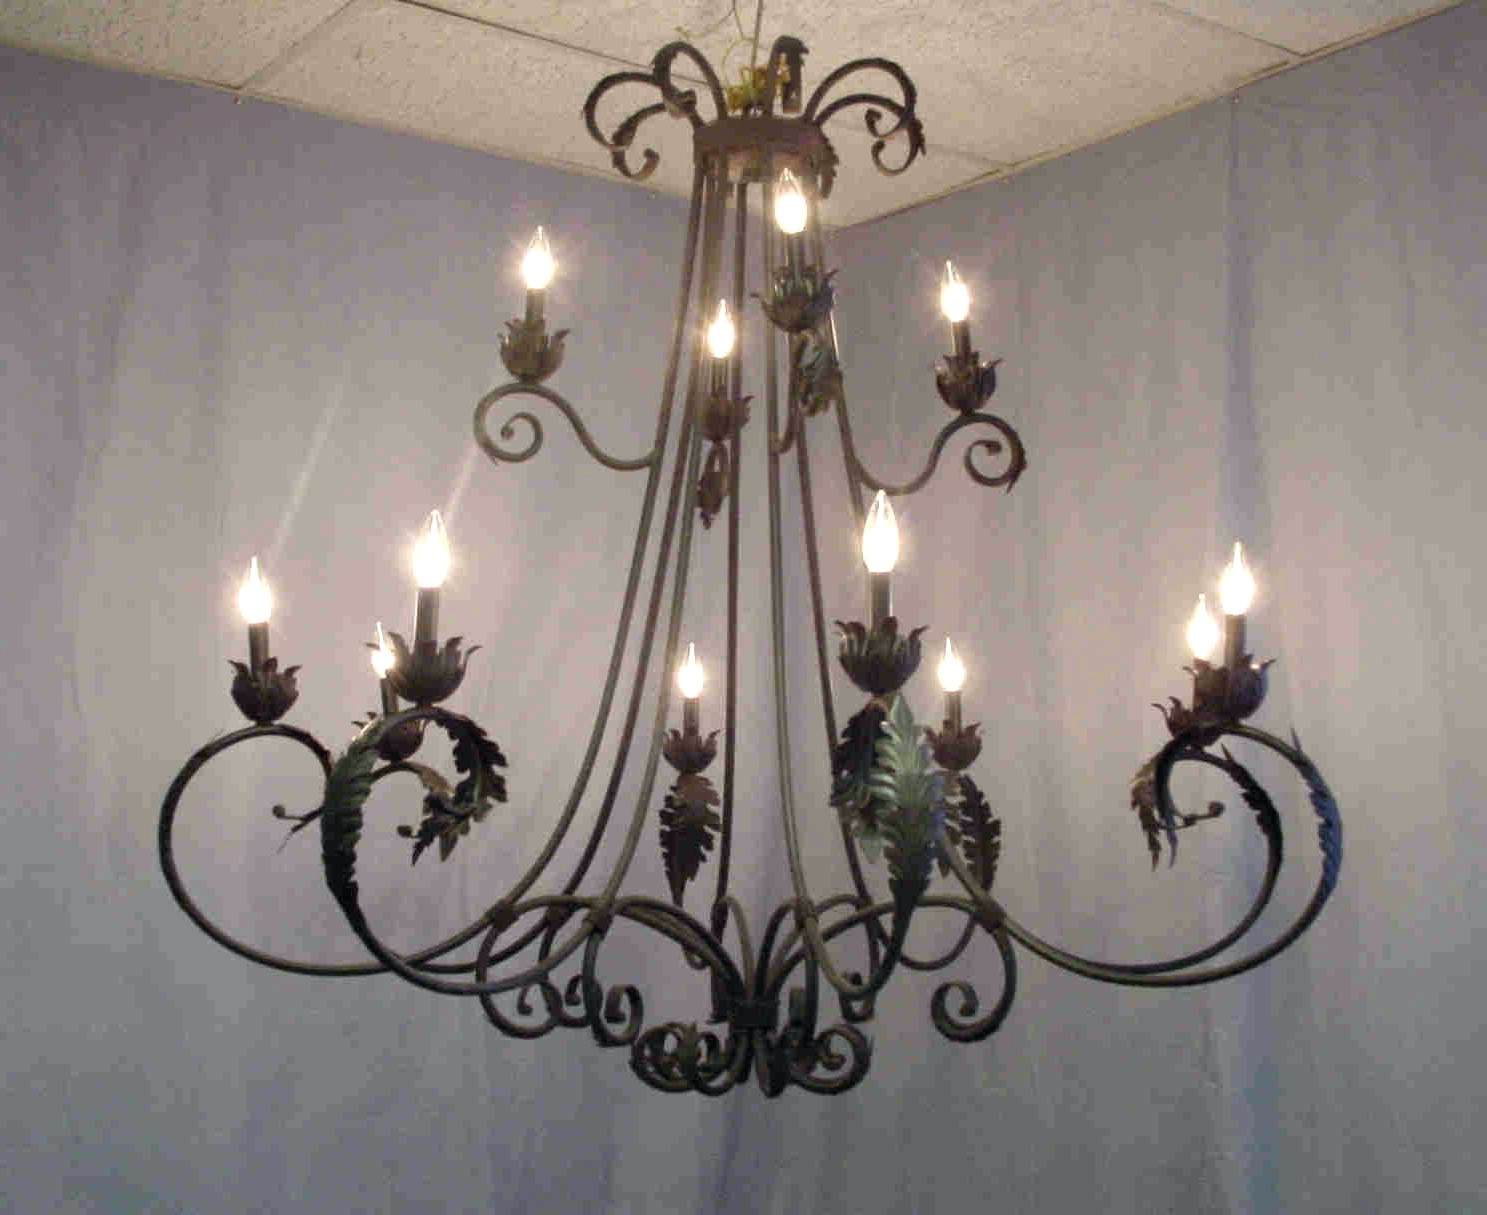 Modern Wrought Iron Chandeliers With Well Liked Chandeliers Design : Awesome Modern Round Iron Chandelier Wrought (View 11 of 20)